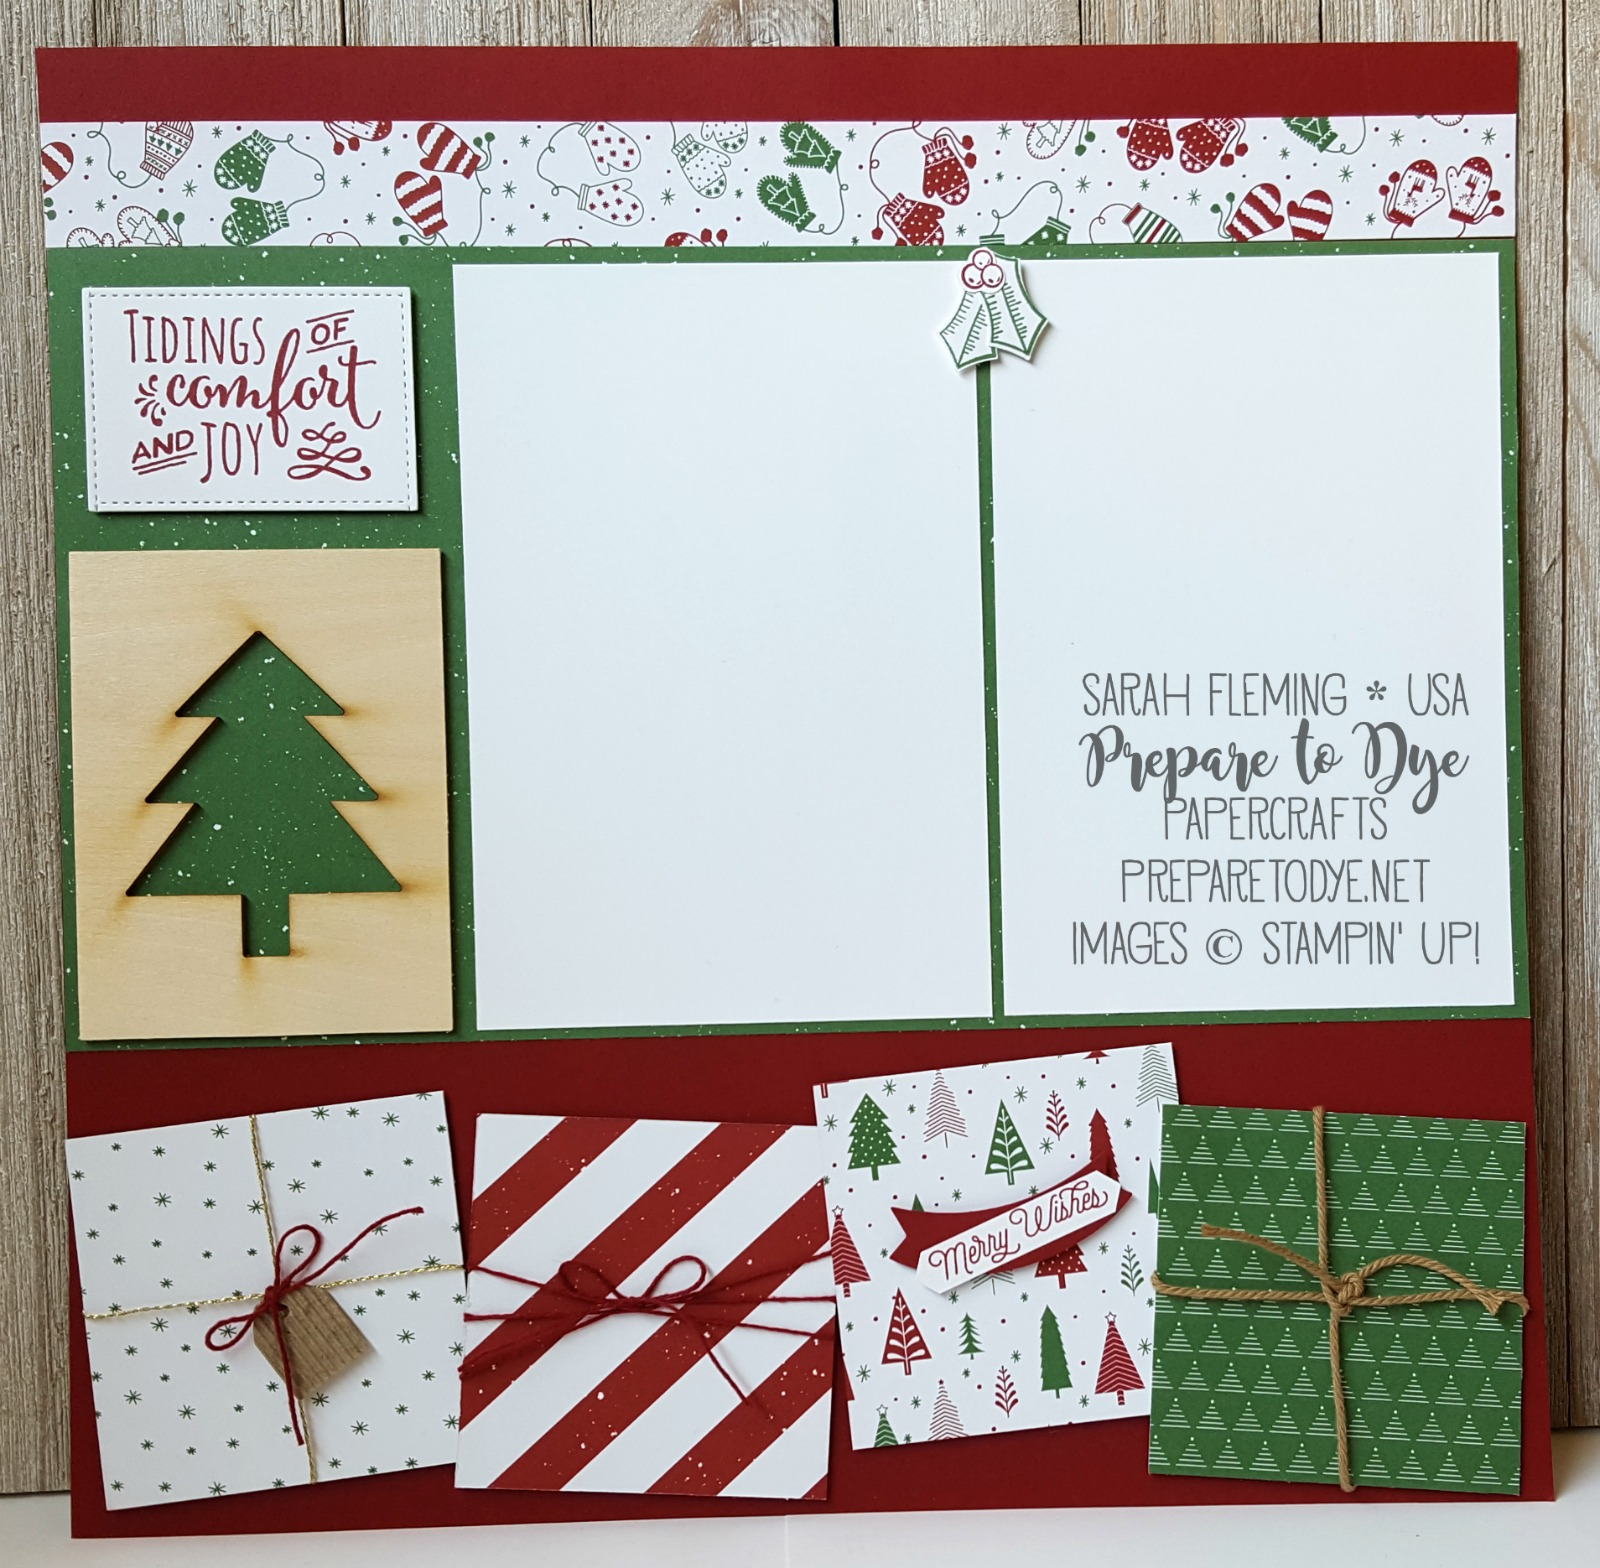 Stampin' Up! scrapbook page with Be Merry paper, Christmas Pines, Holly Berry Happiness, Labels to Love, Oh What Fun, Smitten Mittens - two page layout - Sarah Fleming - Prepare to Dye Papercrafts